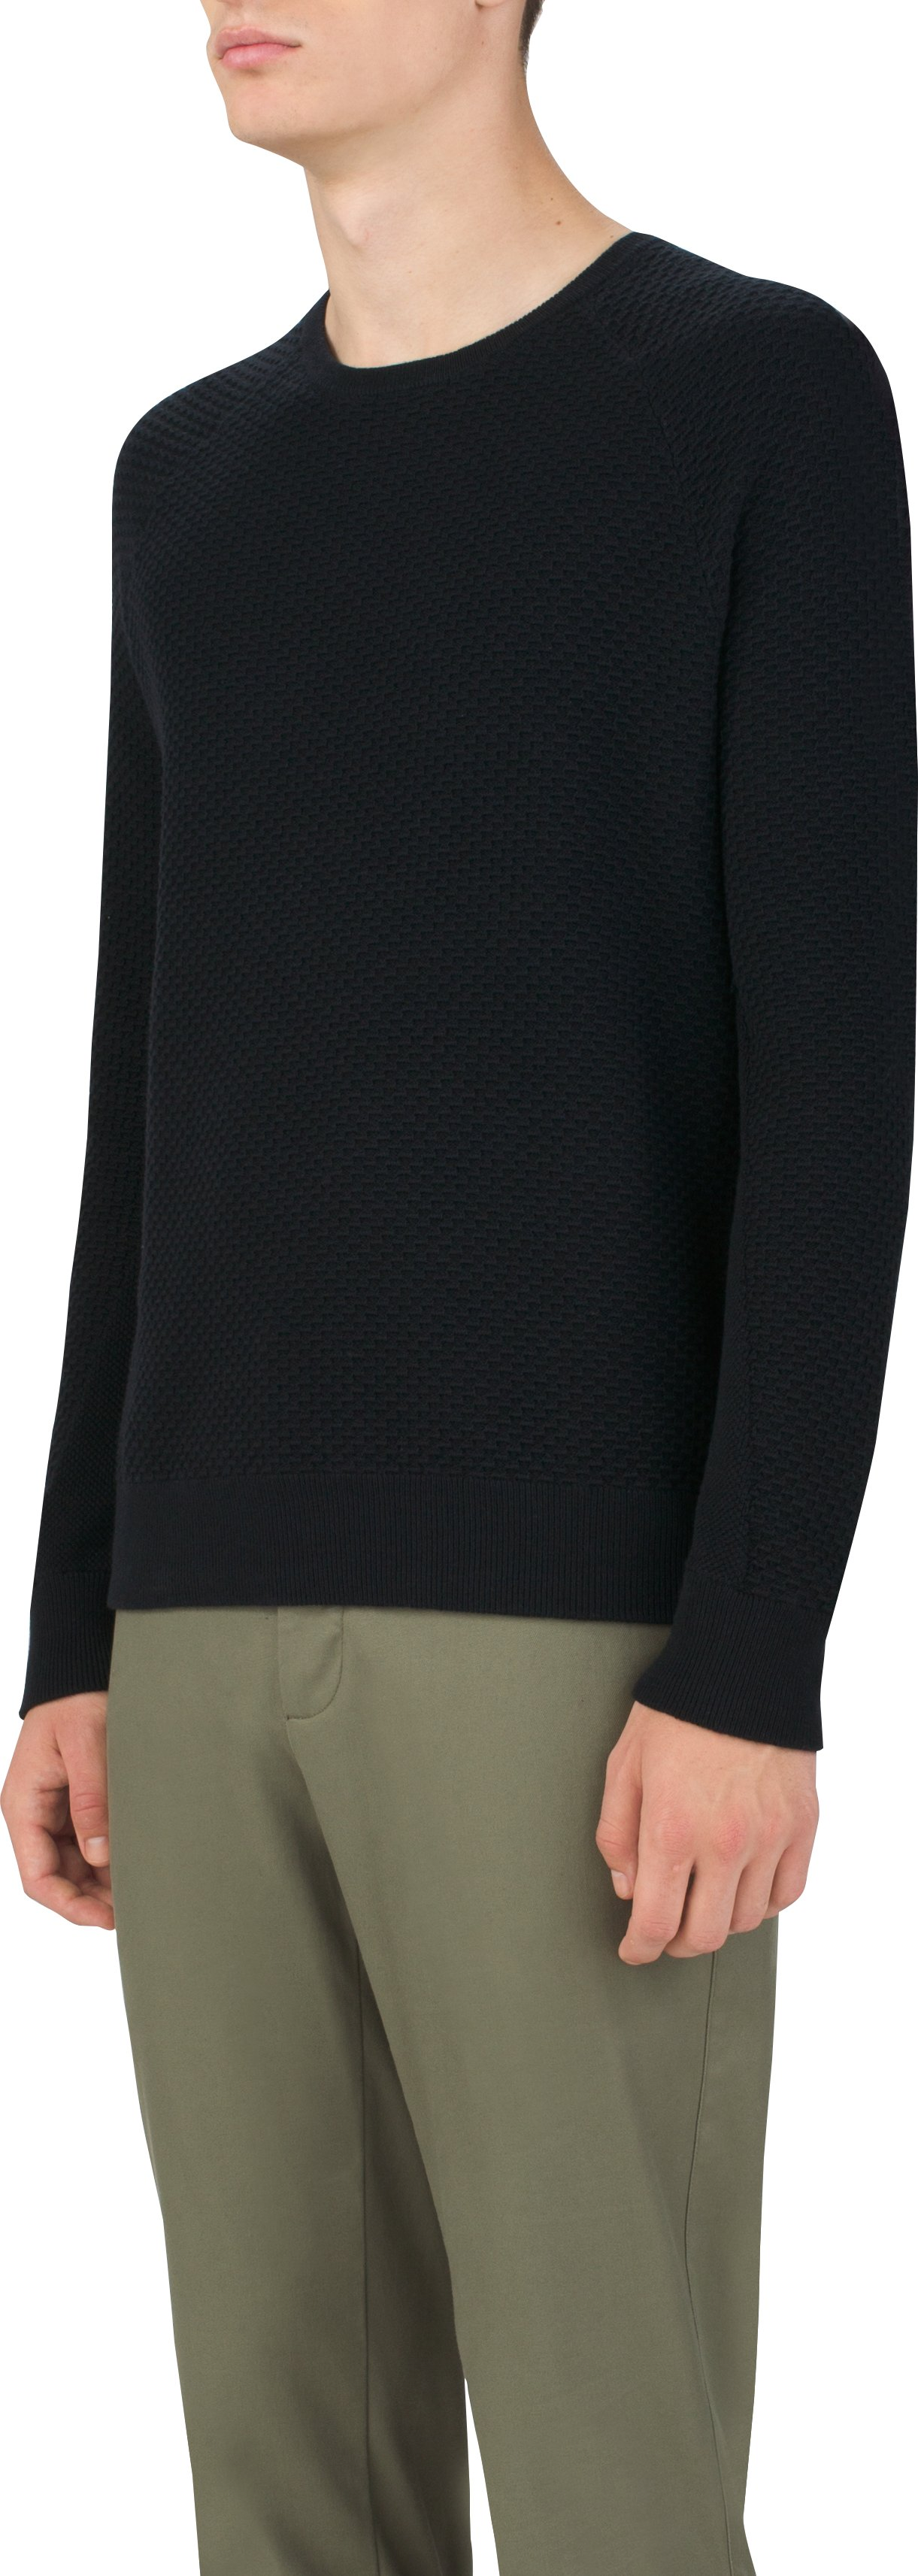 Gridknit Crew Sweater, Black